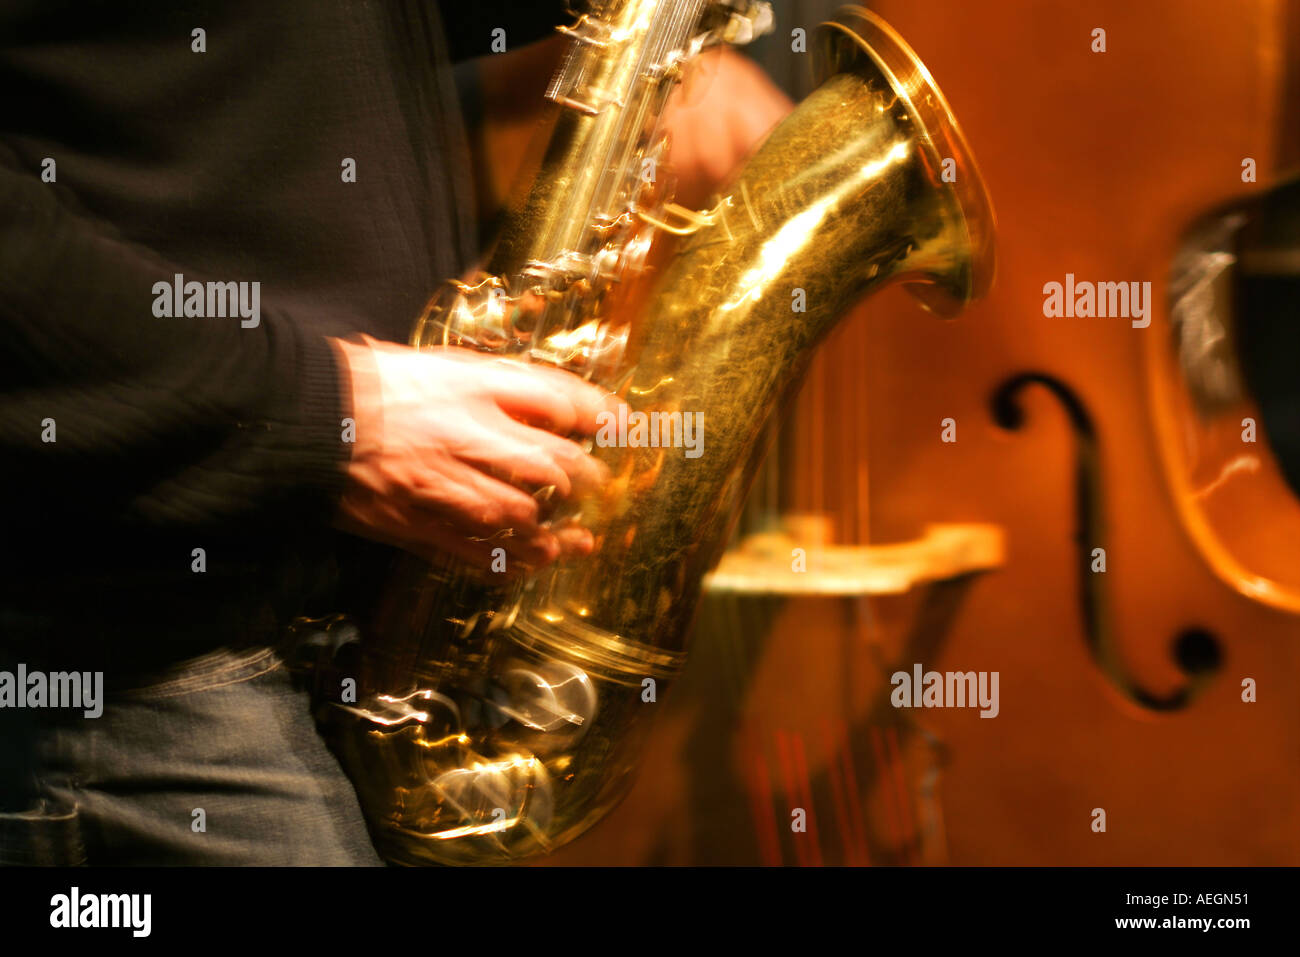 Blur of saxophone and upright bass  Stock Photo